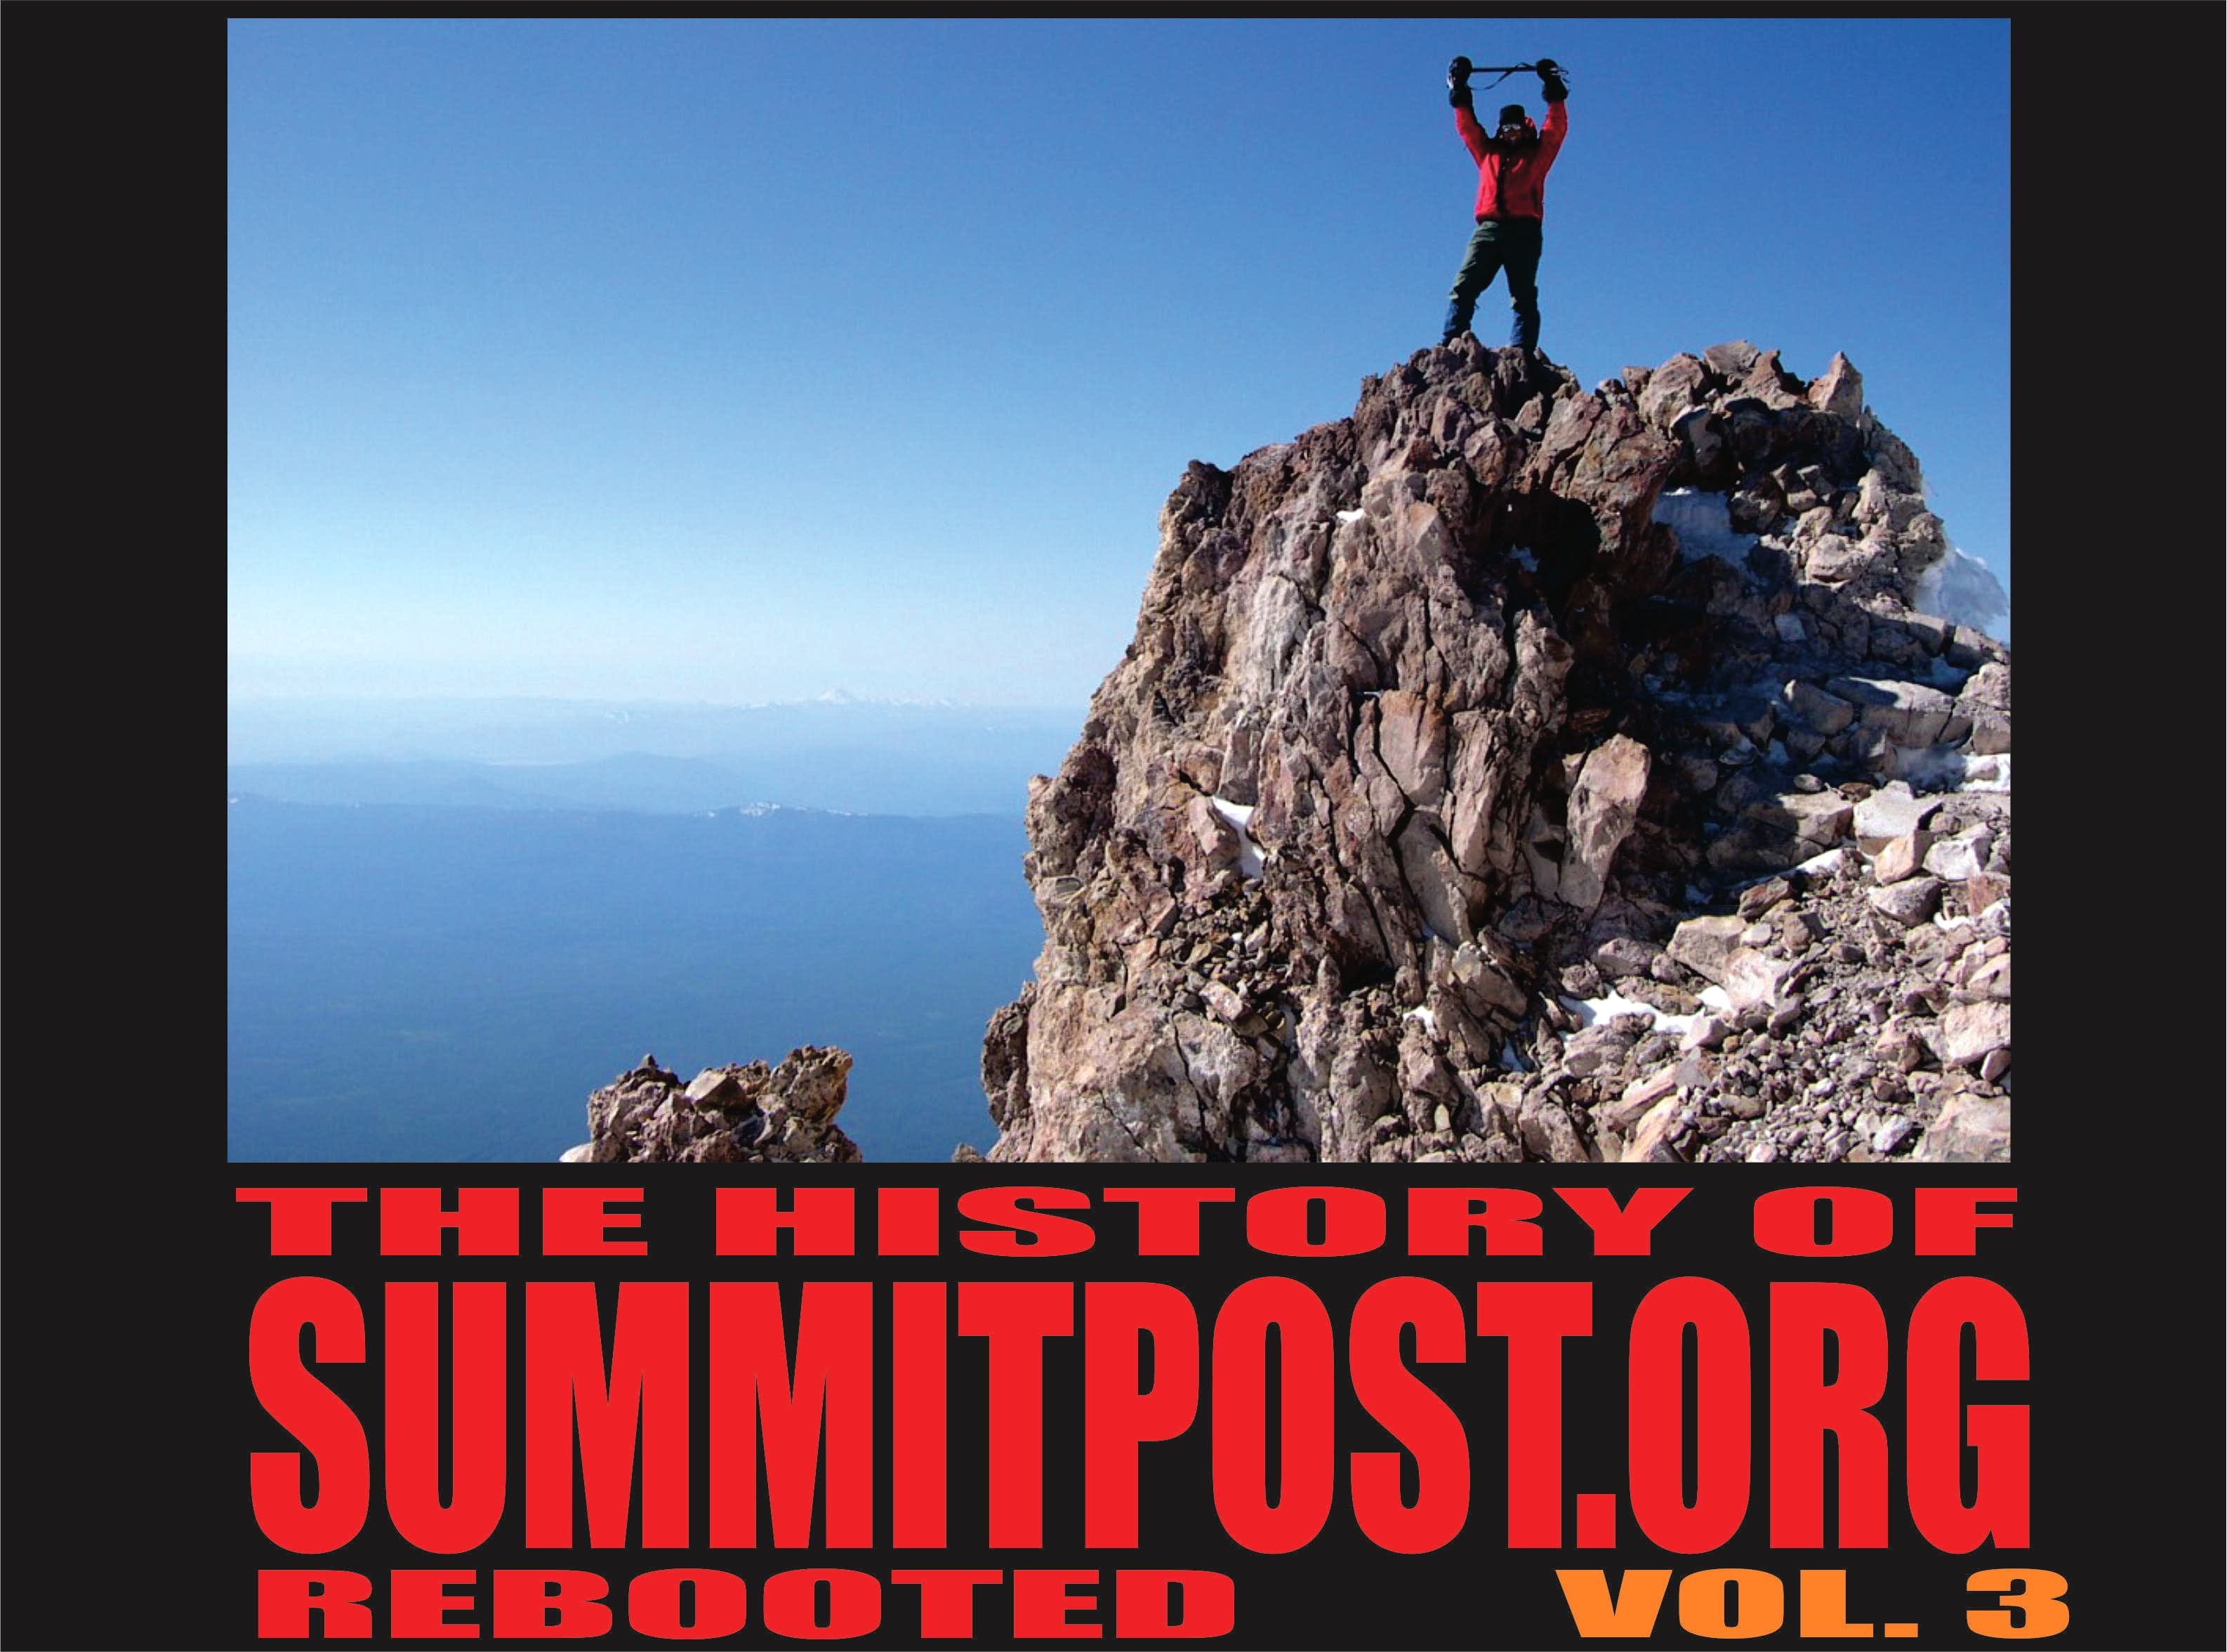 THE HISTORY OF SUMMITPOST Volume 3